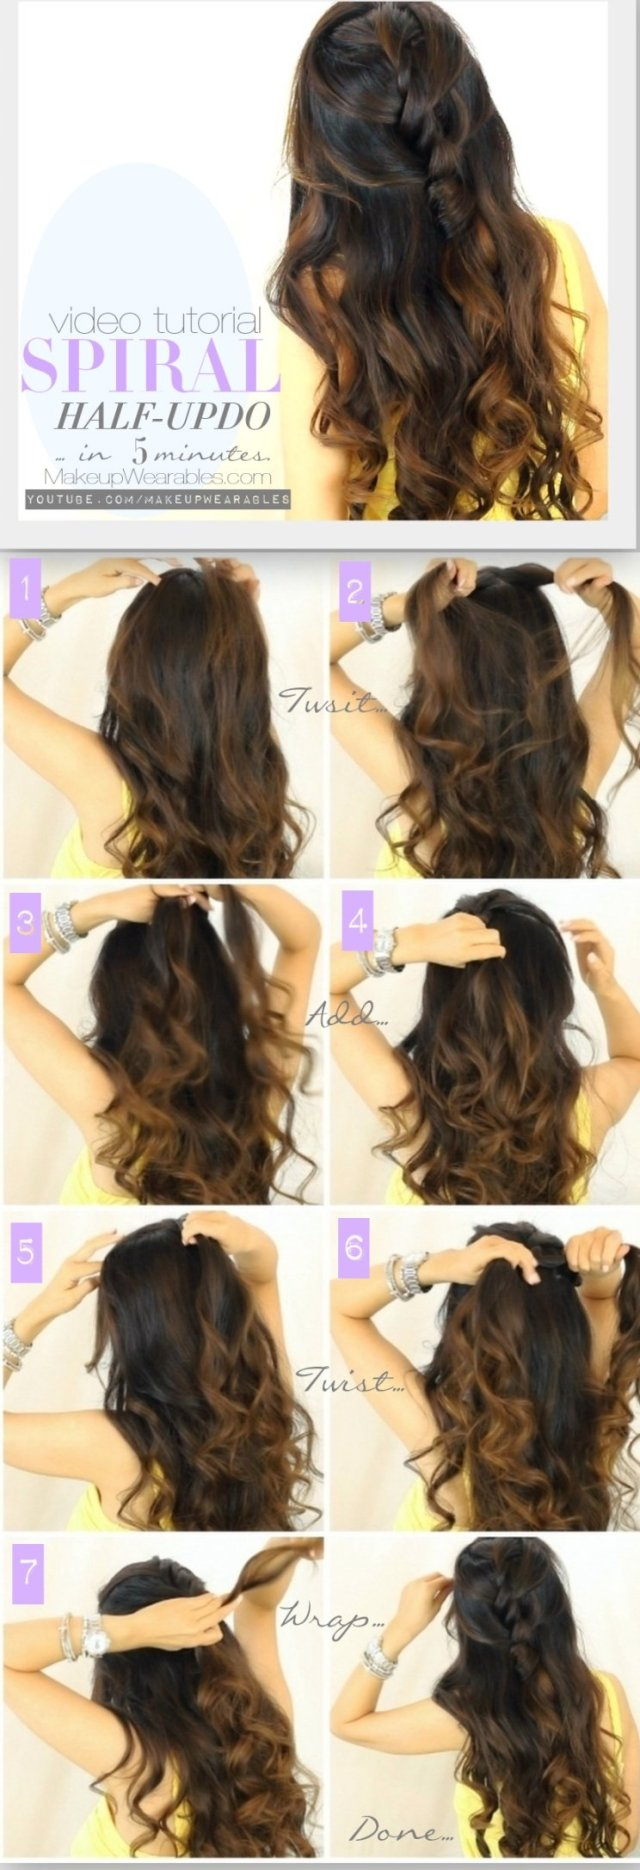 12 half up half down hair tutorials you must have - pretty